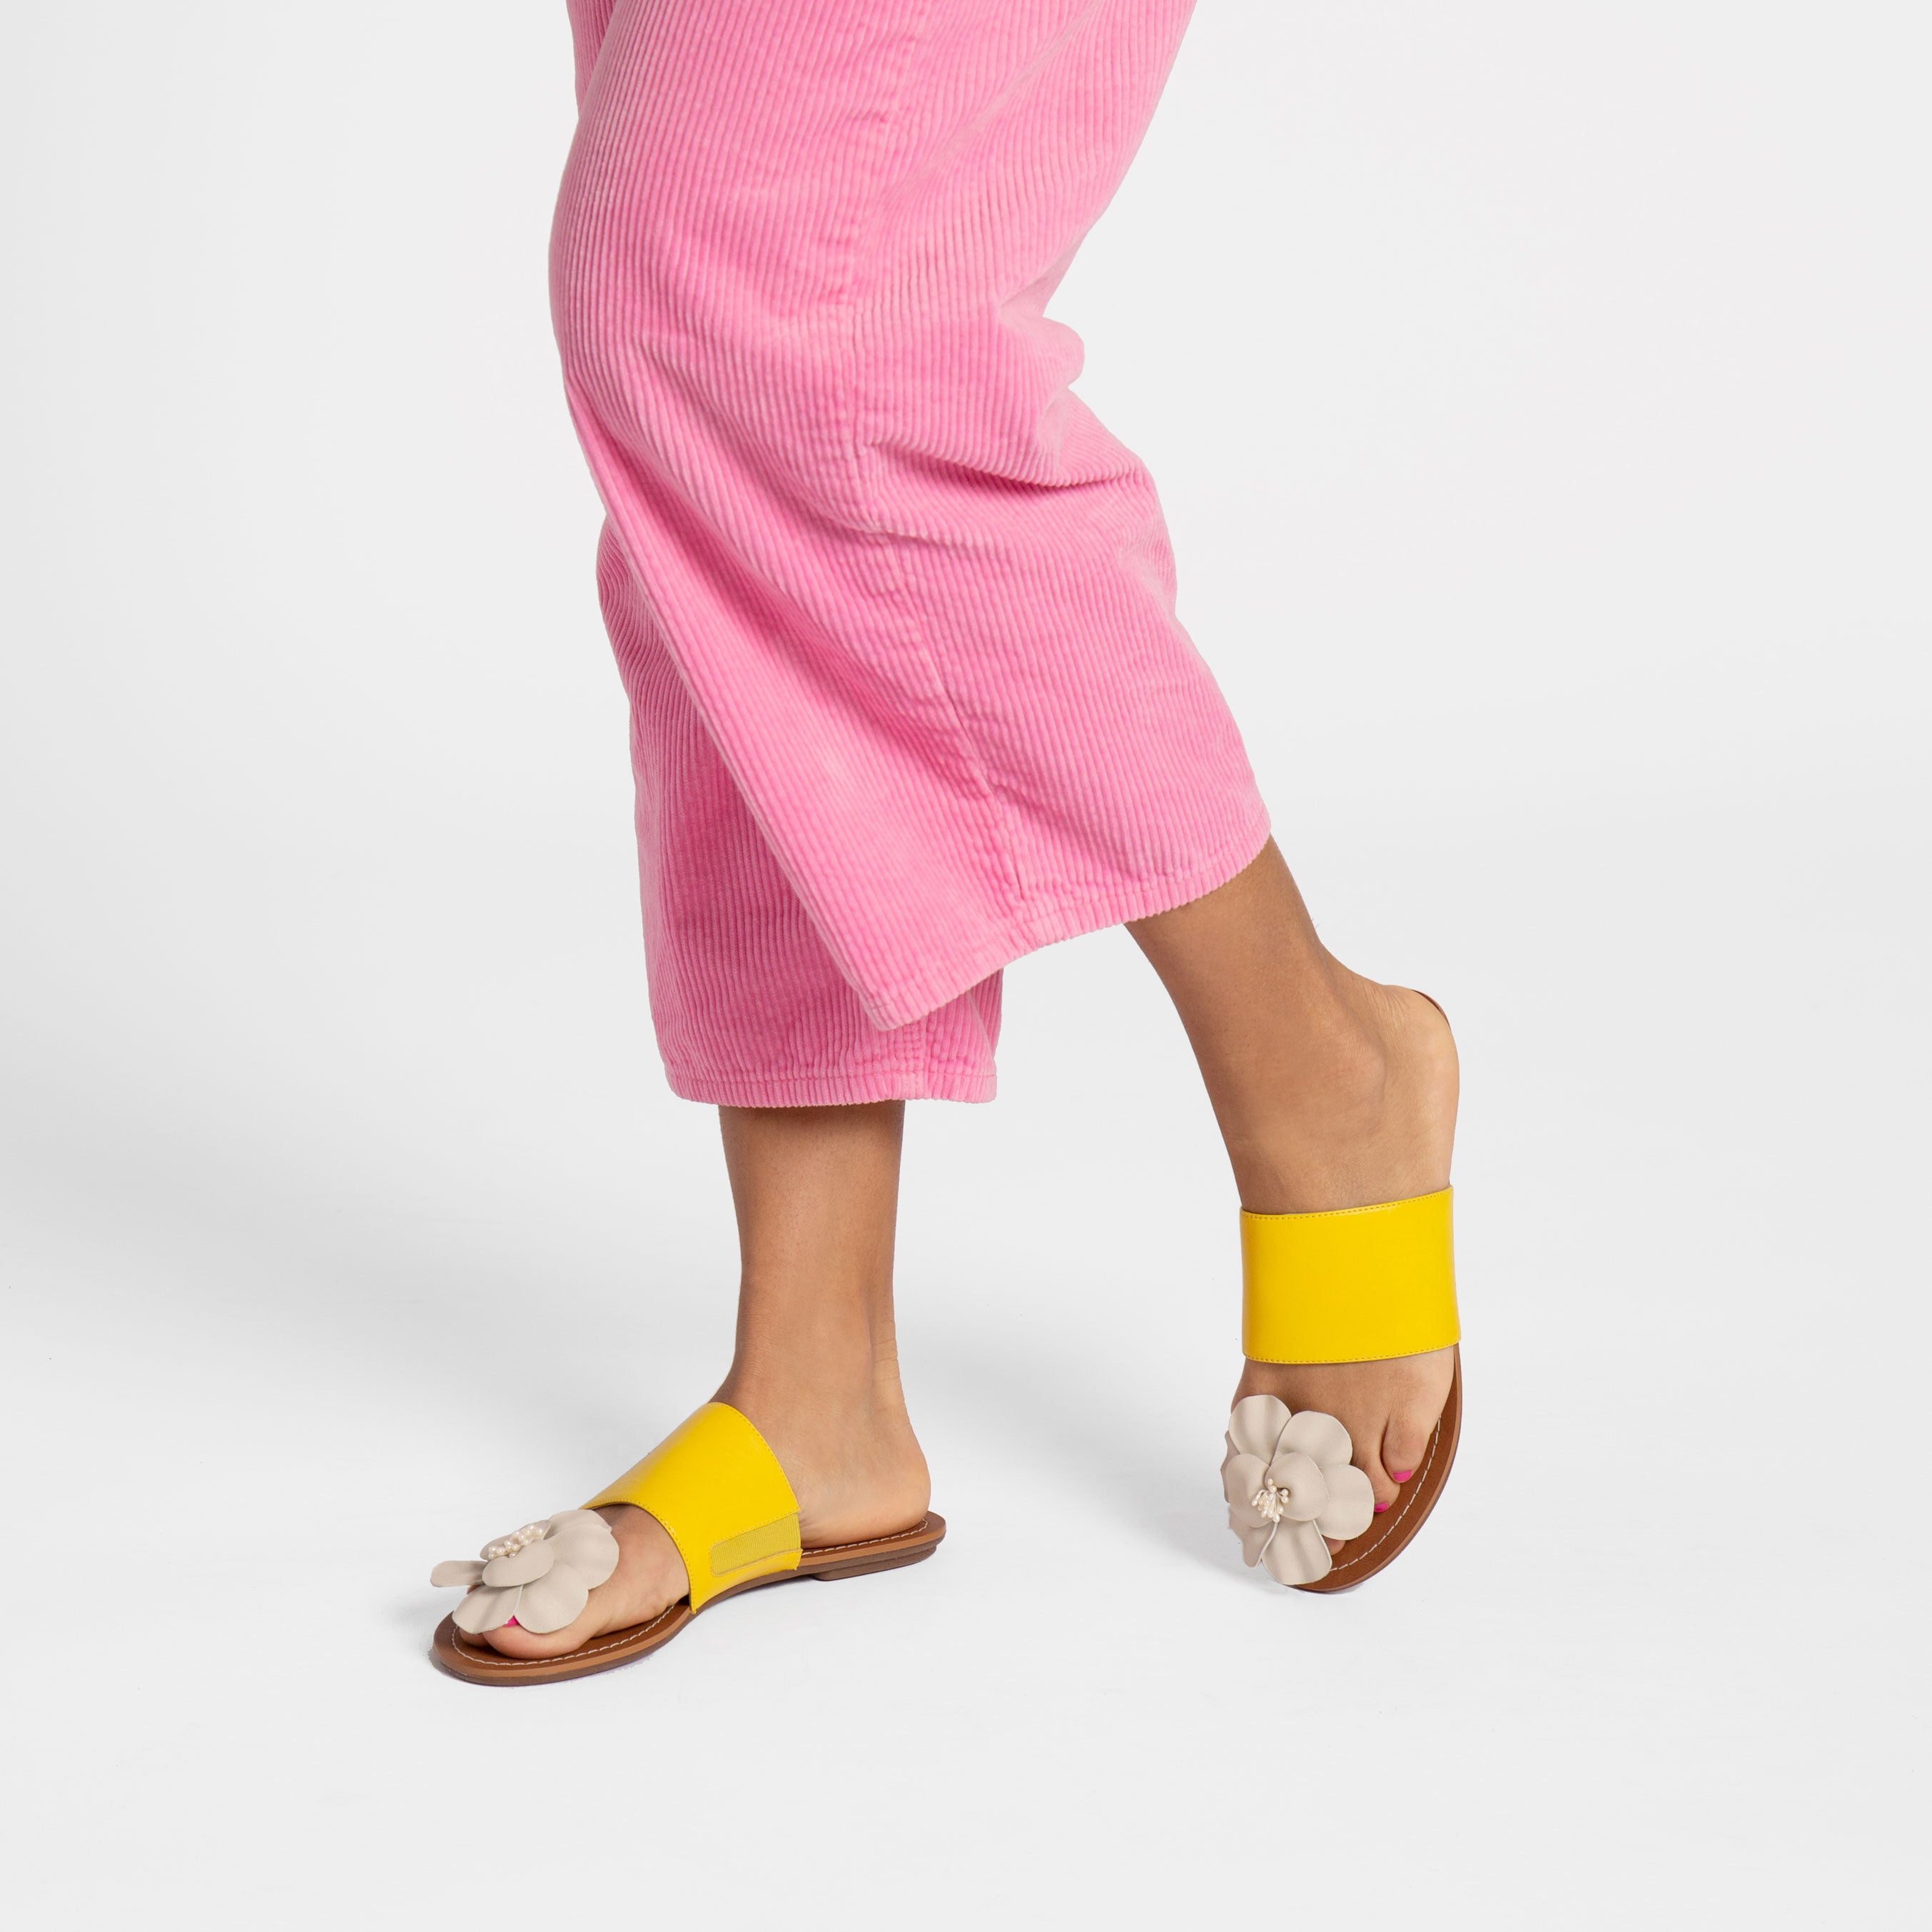 Clementine Flower Sandal Pink